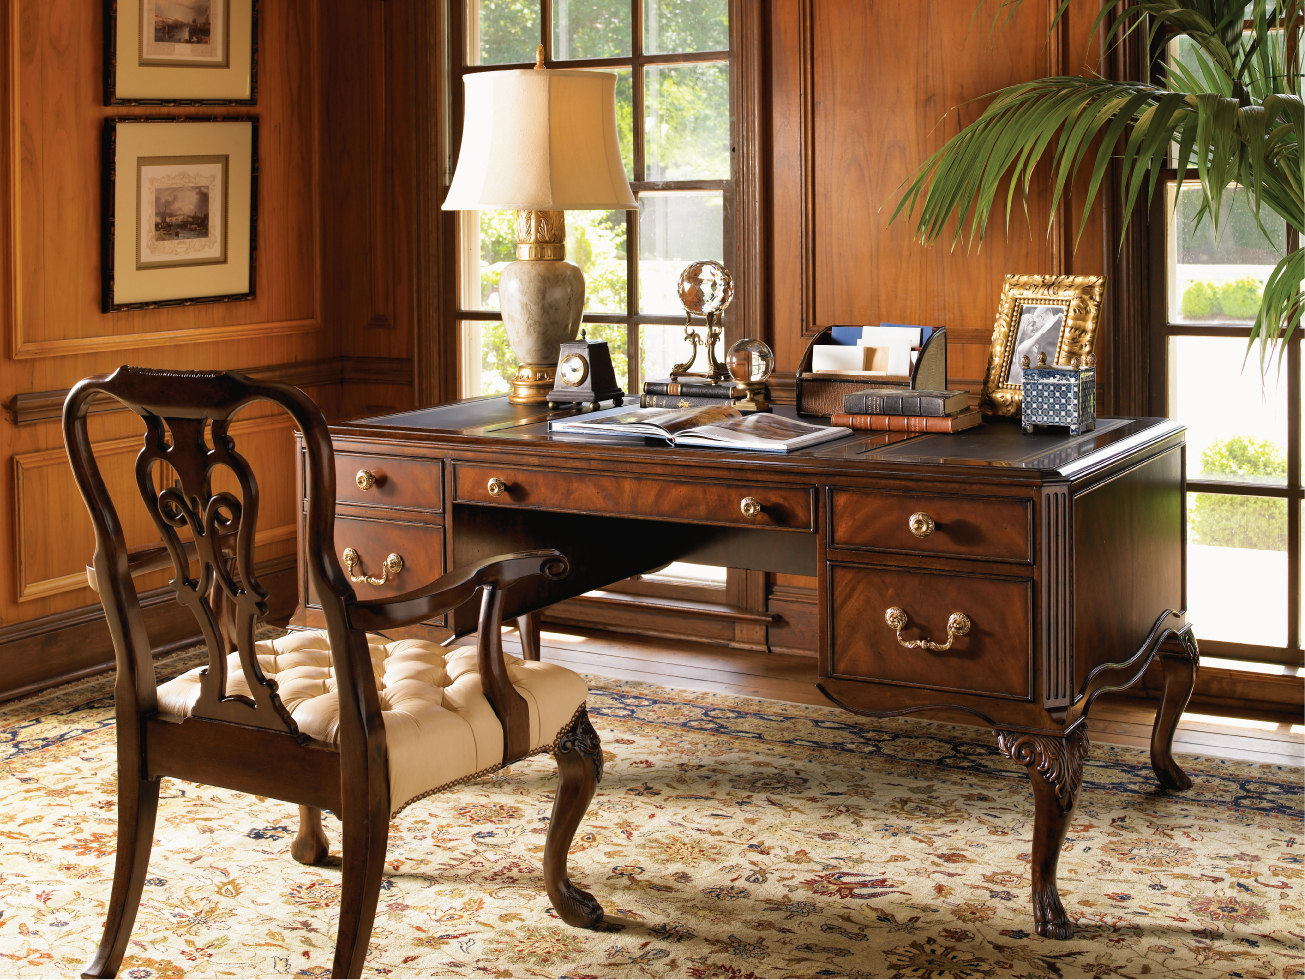 classy home furniture. Office-workspace-classy-home-office-decorating-idea-with-vintage-furniture -30-comfortable-office-decorating-ideas.jpg Classy Home Furniture